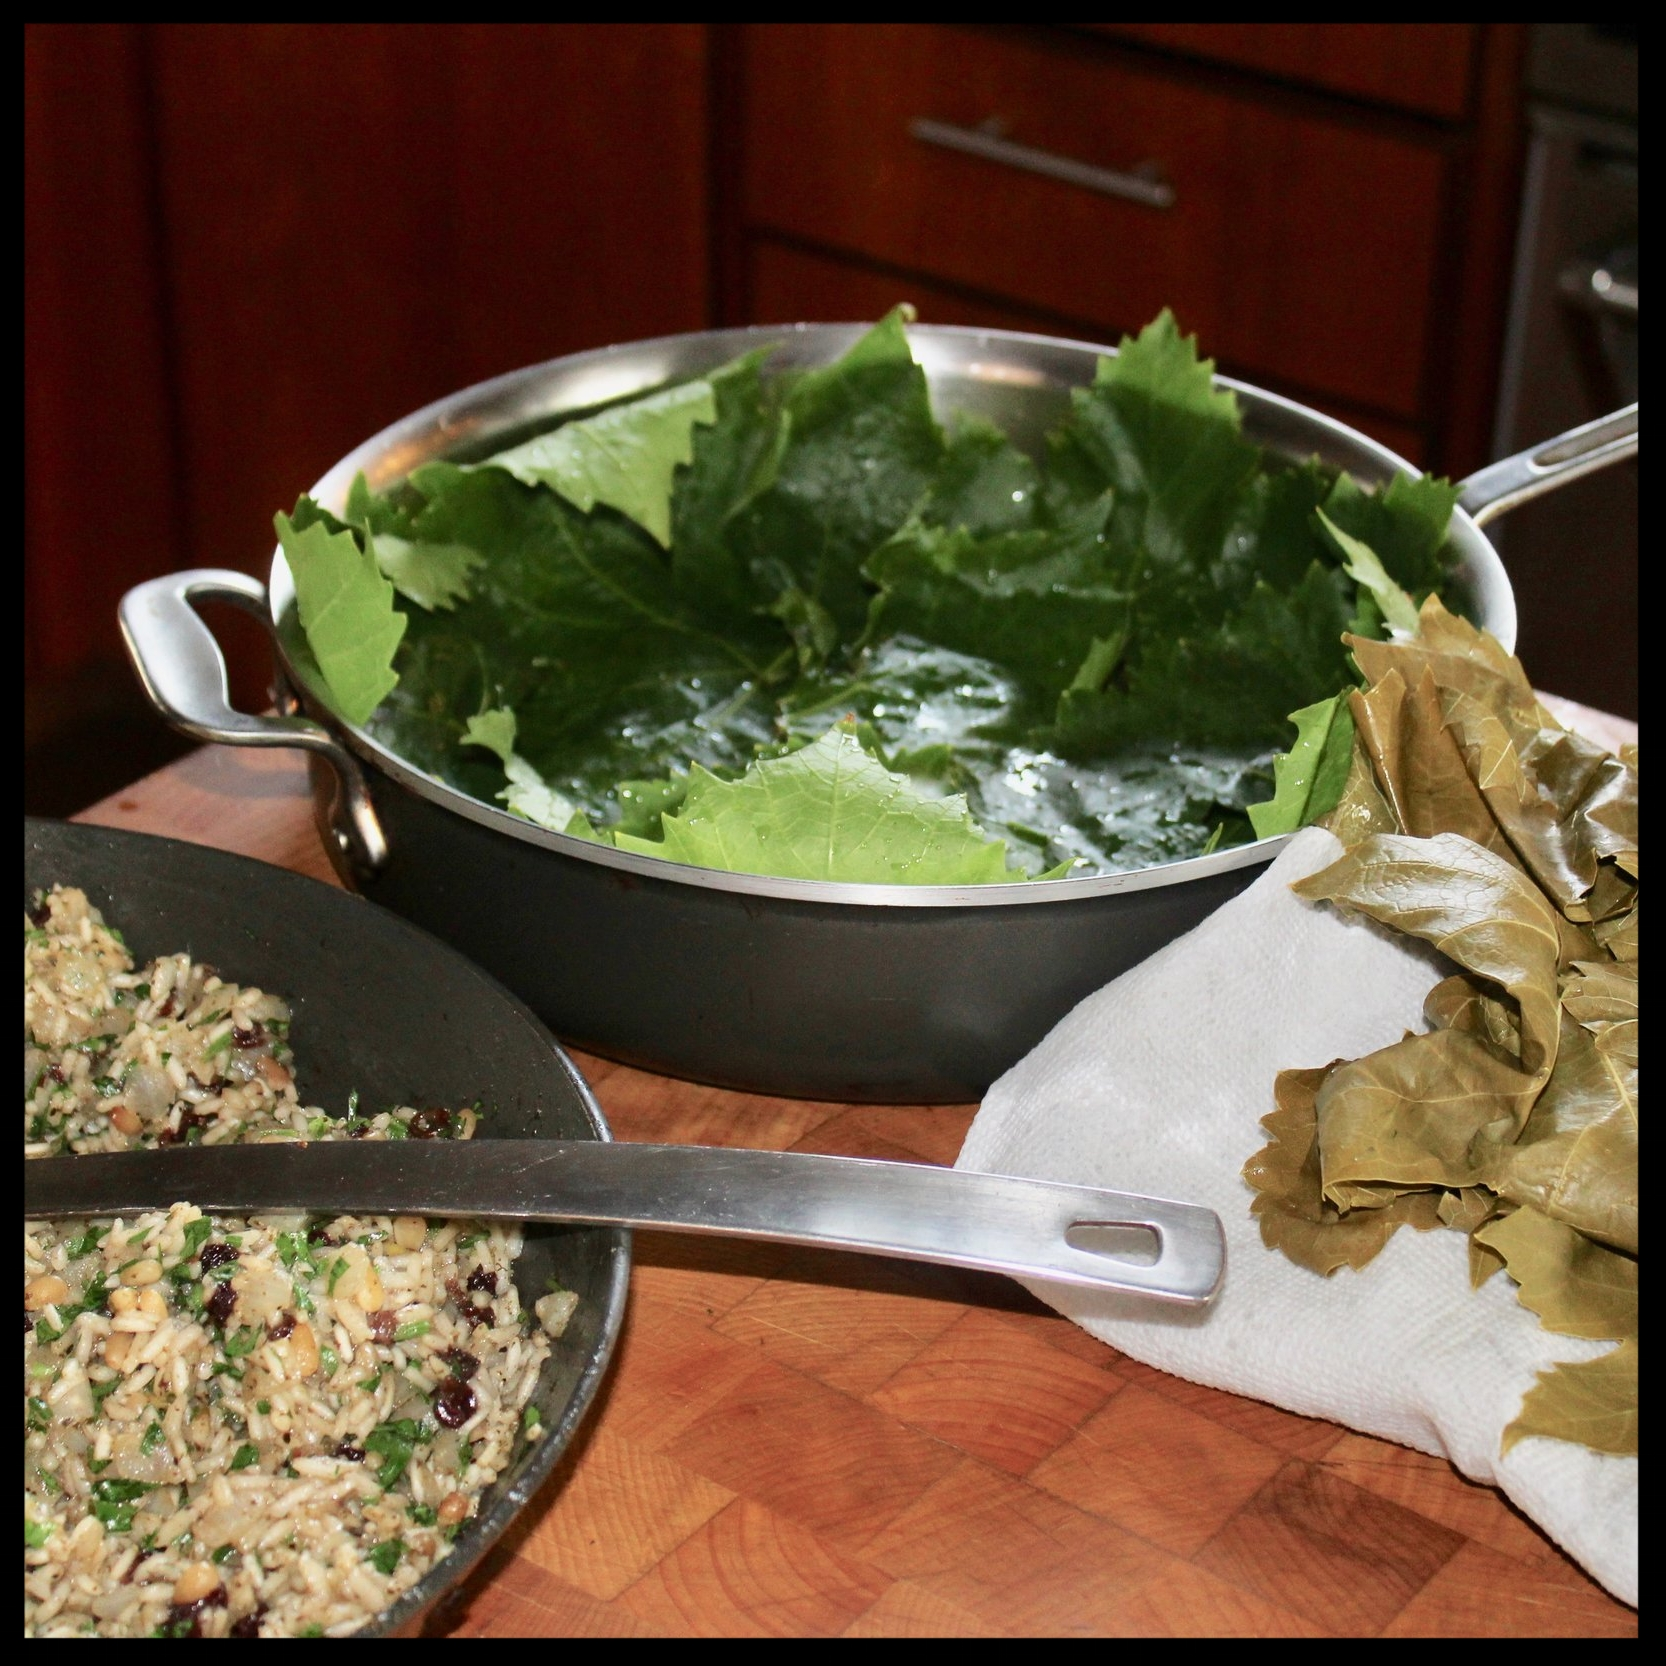 6. Line a straight-sided large pan with about 10-12 grape leaves (use the torn or imperfect ones here).  7. Line up your leaves, your pan and your filling in one place.  8. Grab a tablespoon. Let's fill these babies!